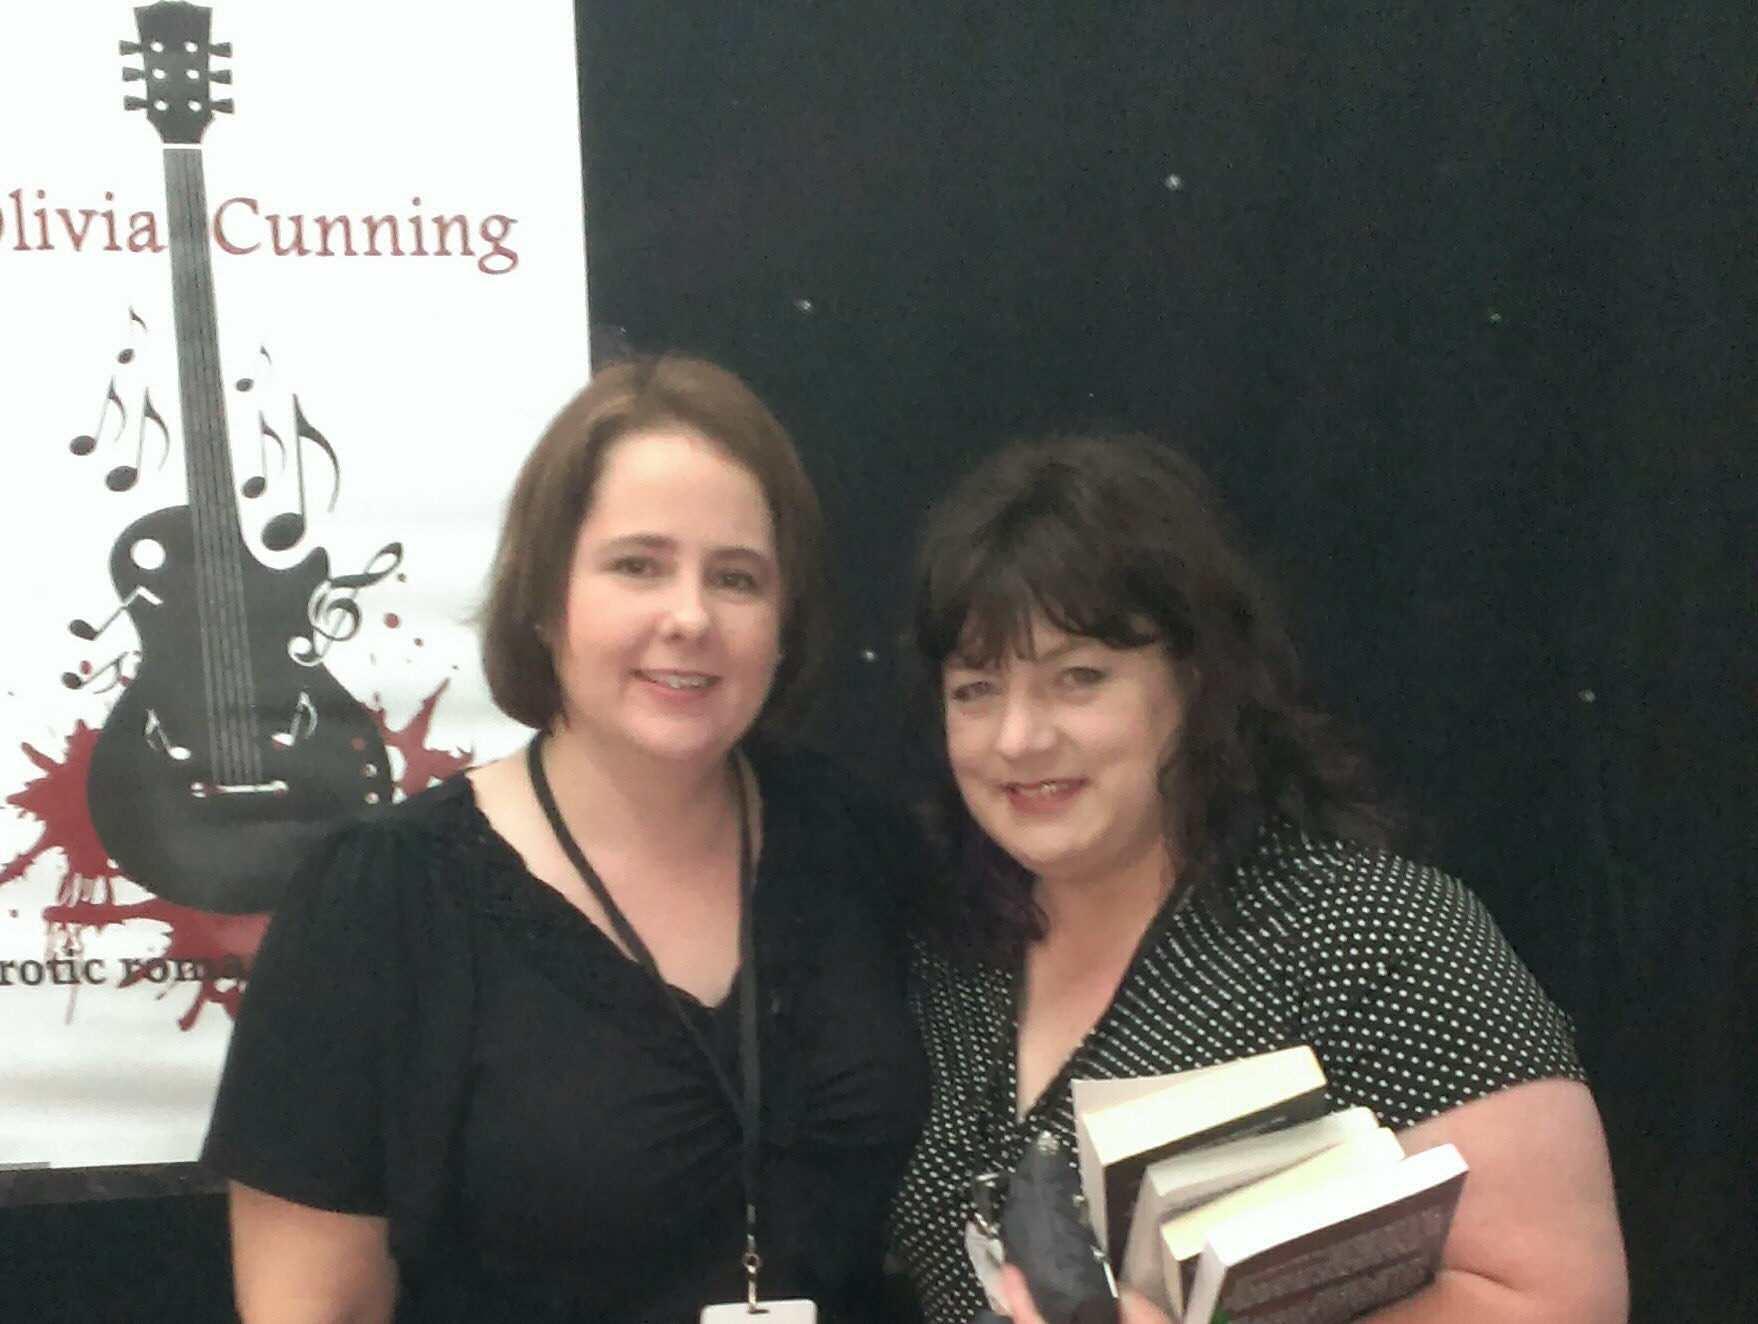 with Olivia Cunning